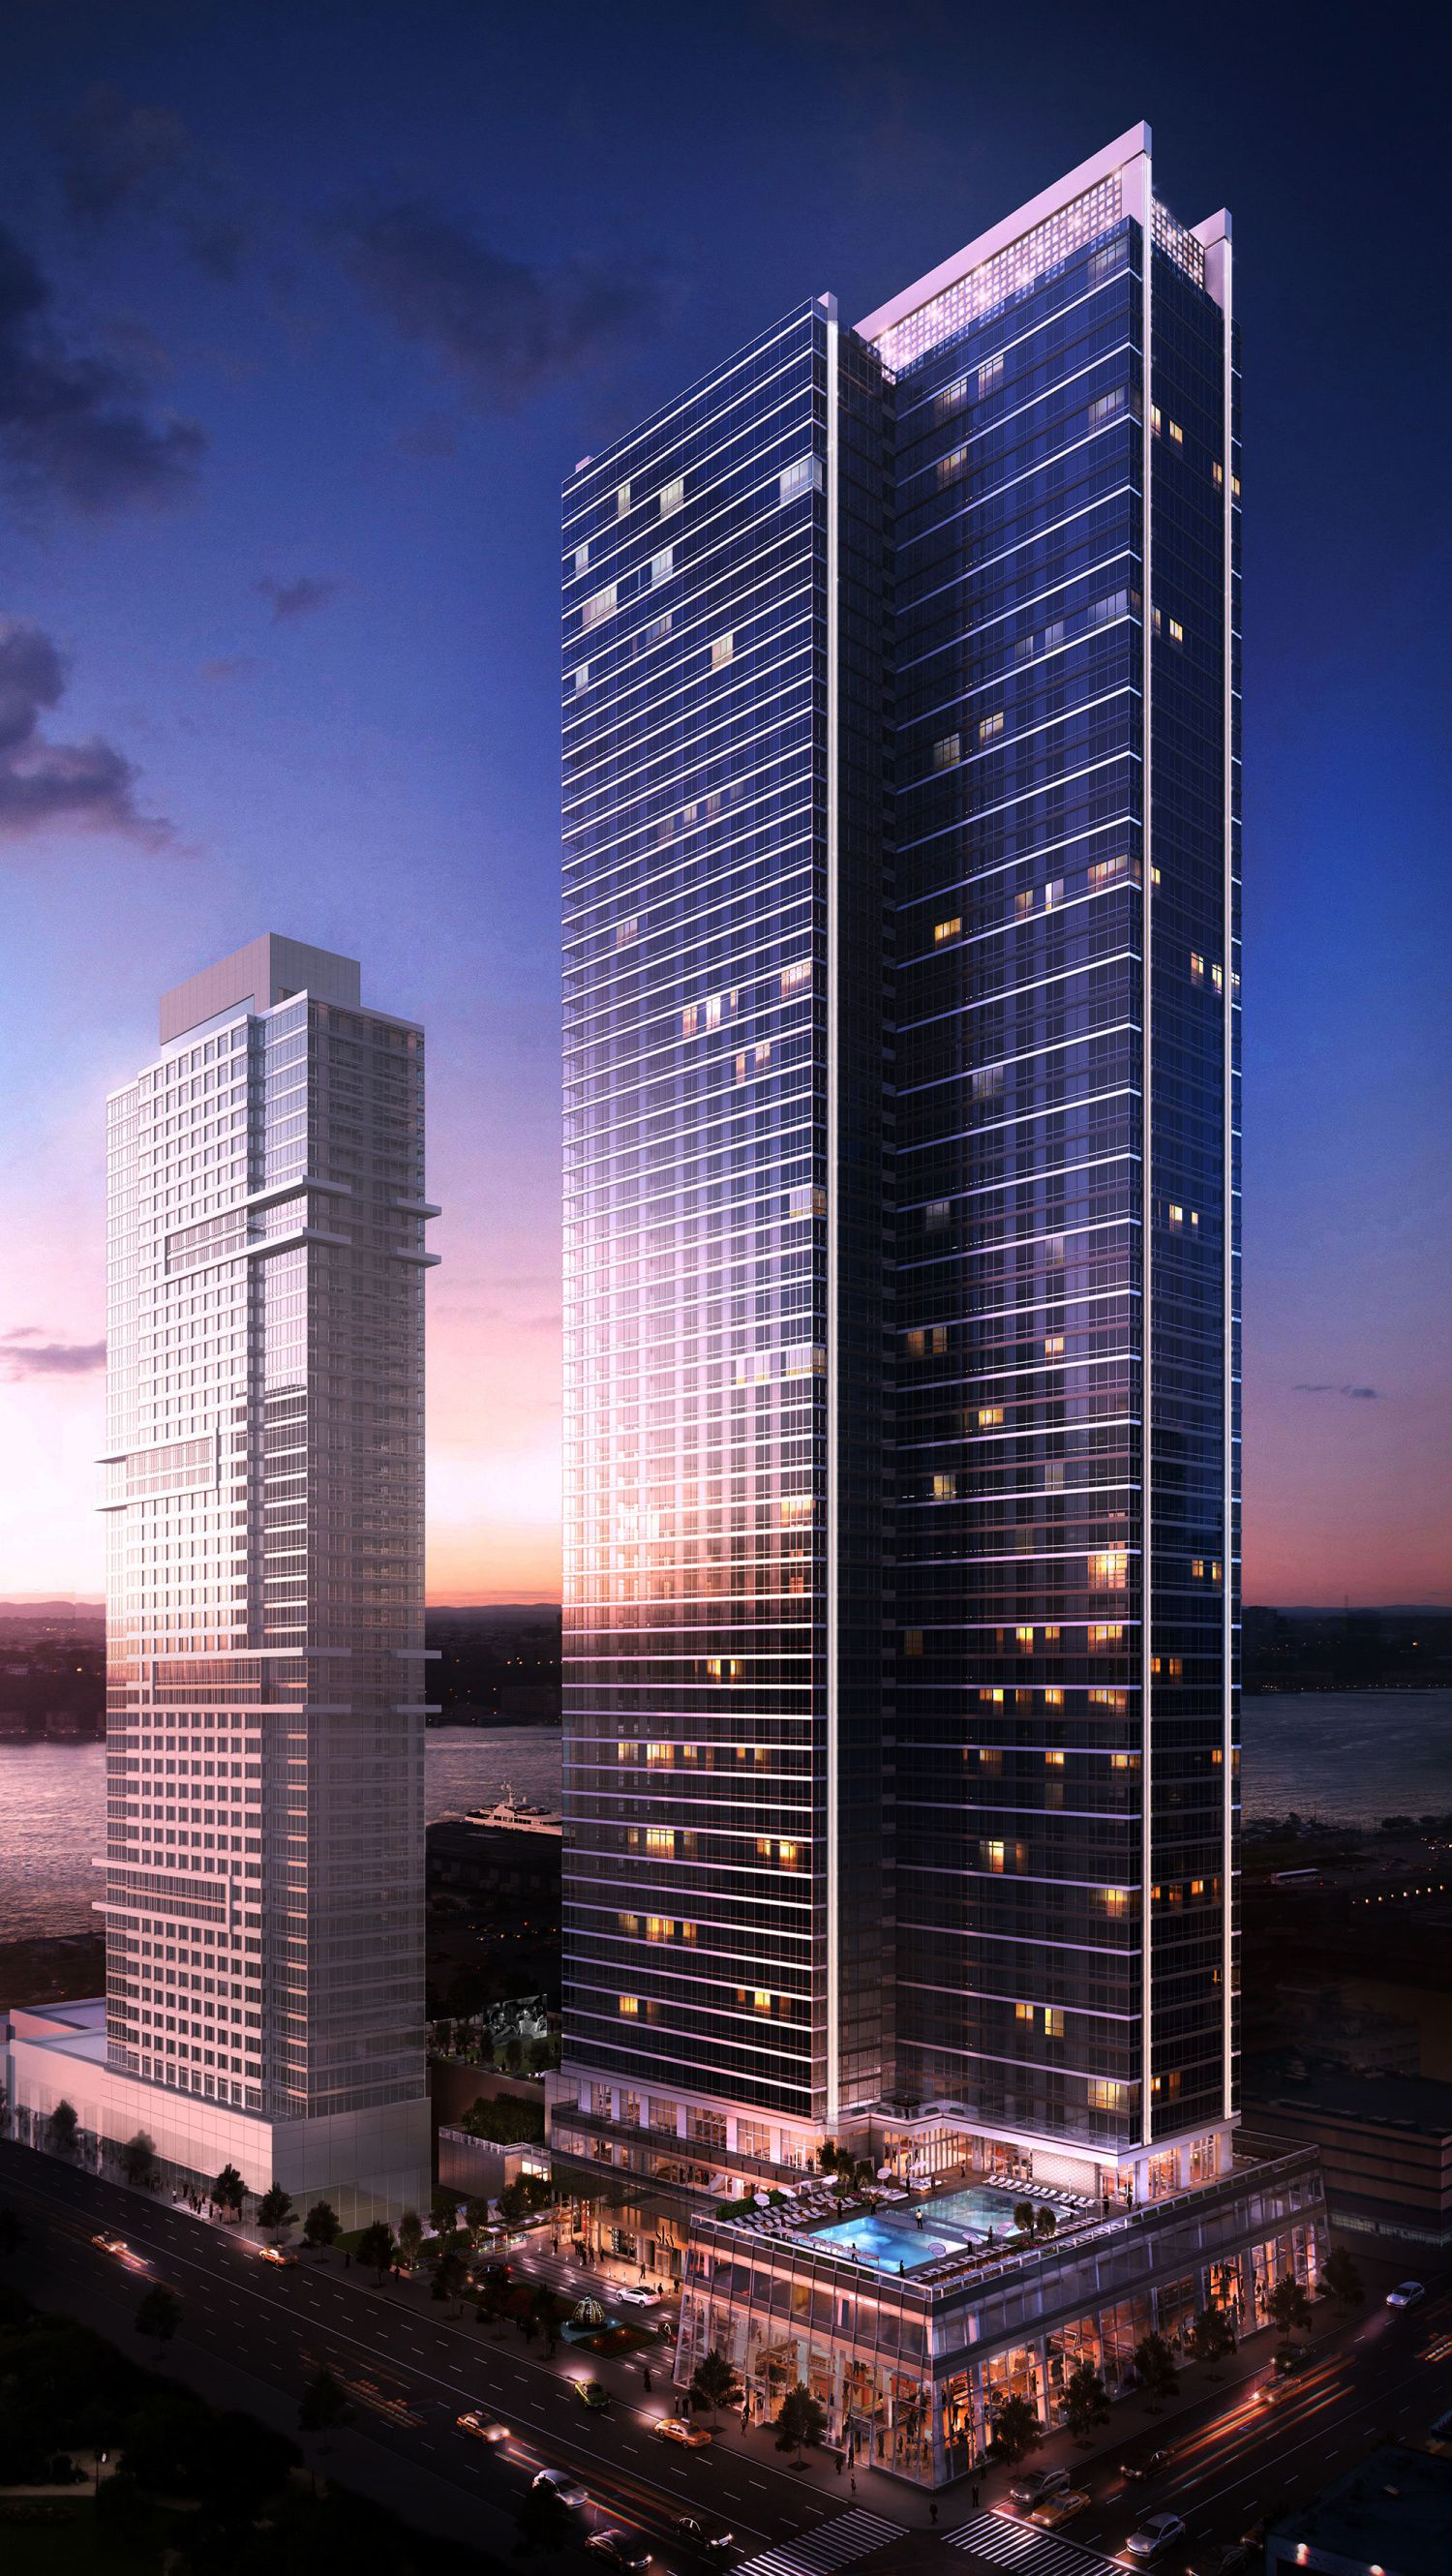 Sky Luxury Apartments Nyc The Largest Residential Building In New York City